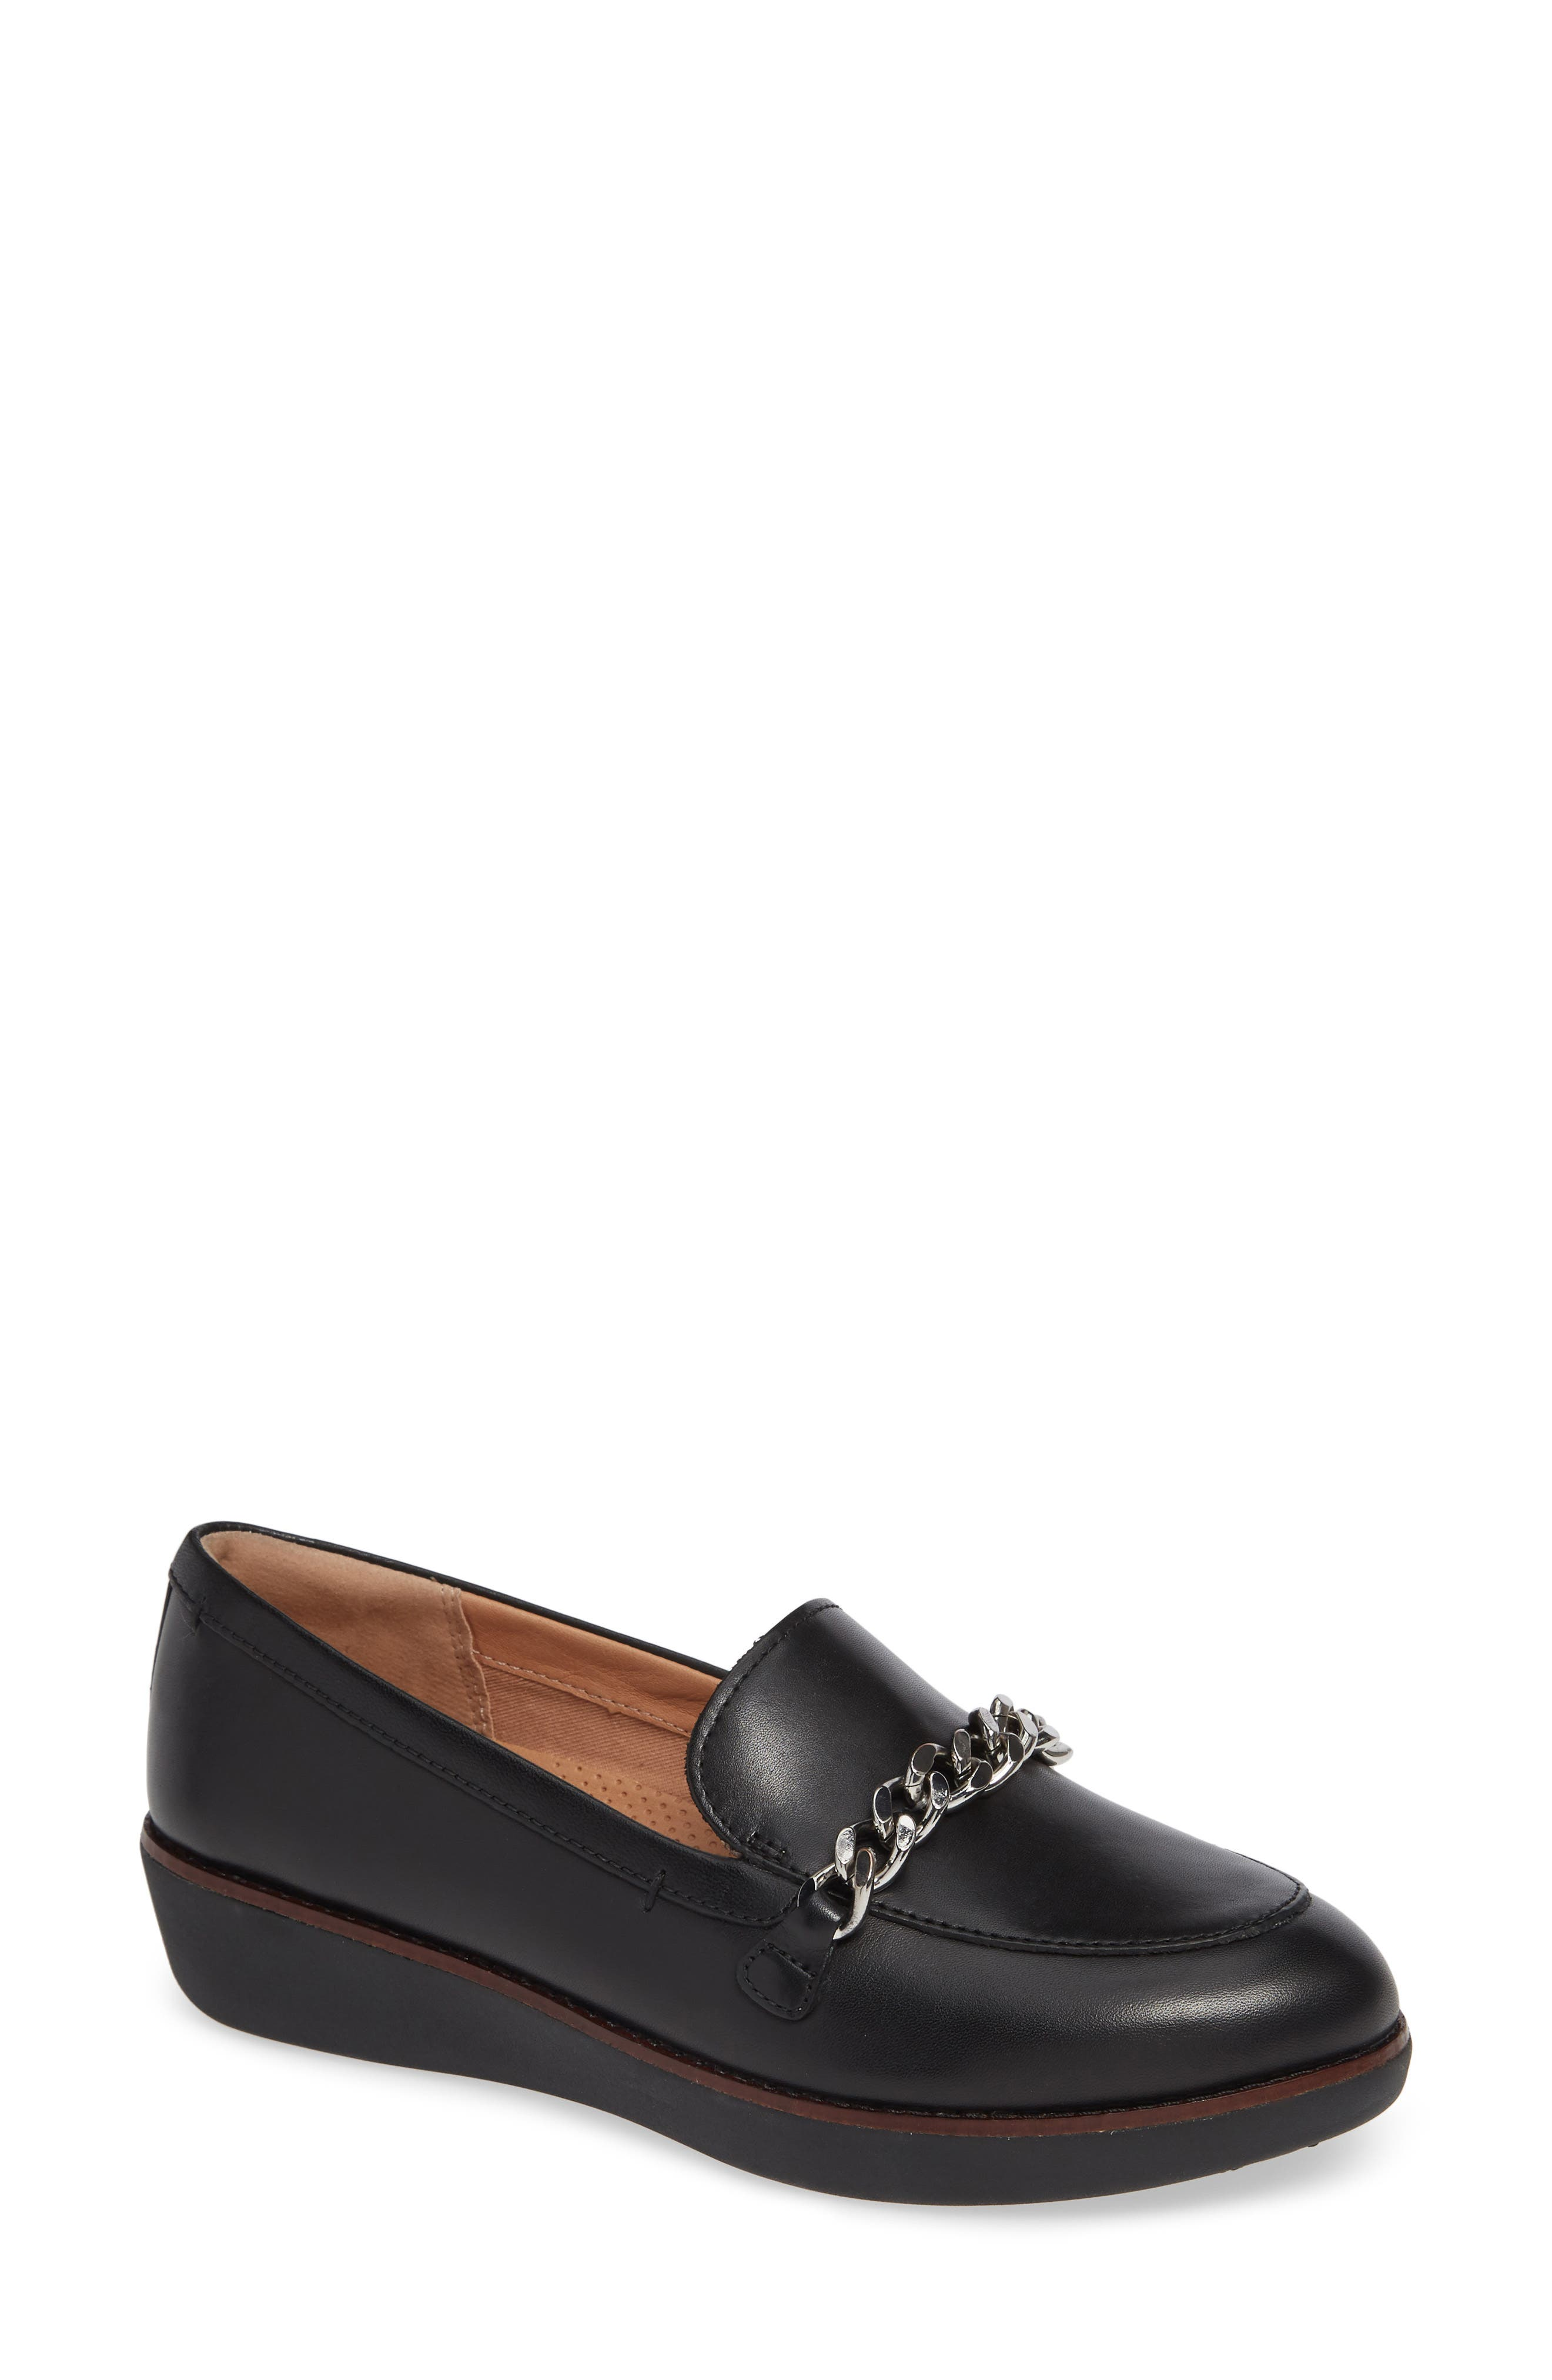 Fitflop Petrina Chain Loafer, Black